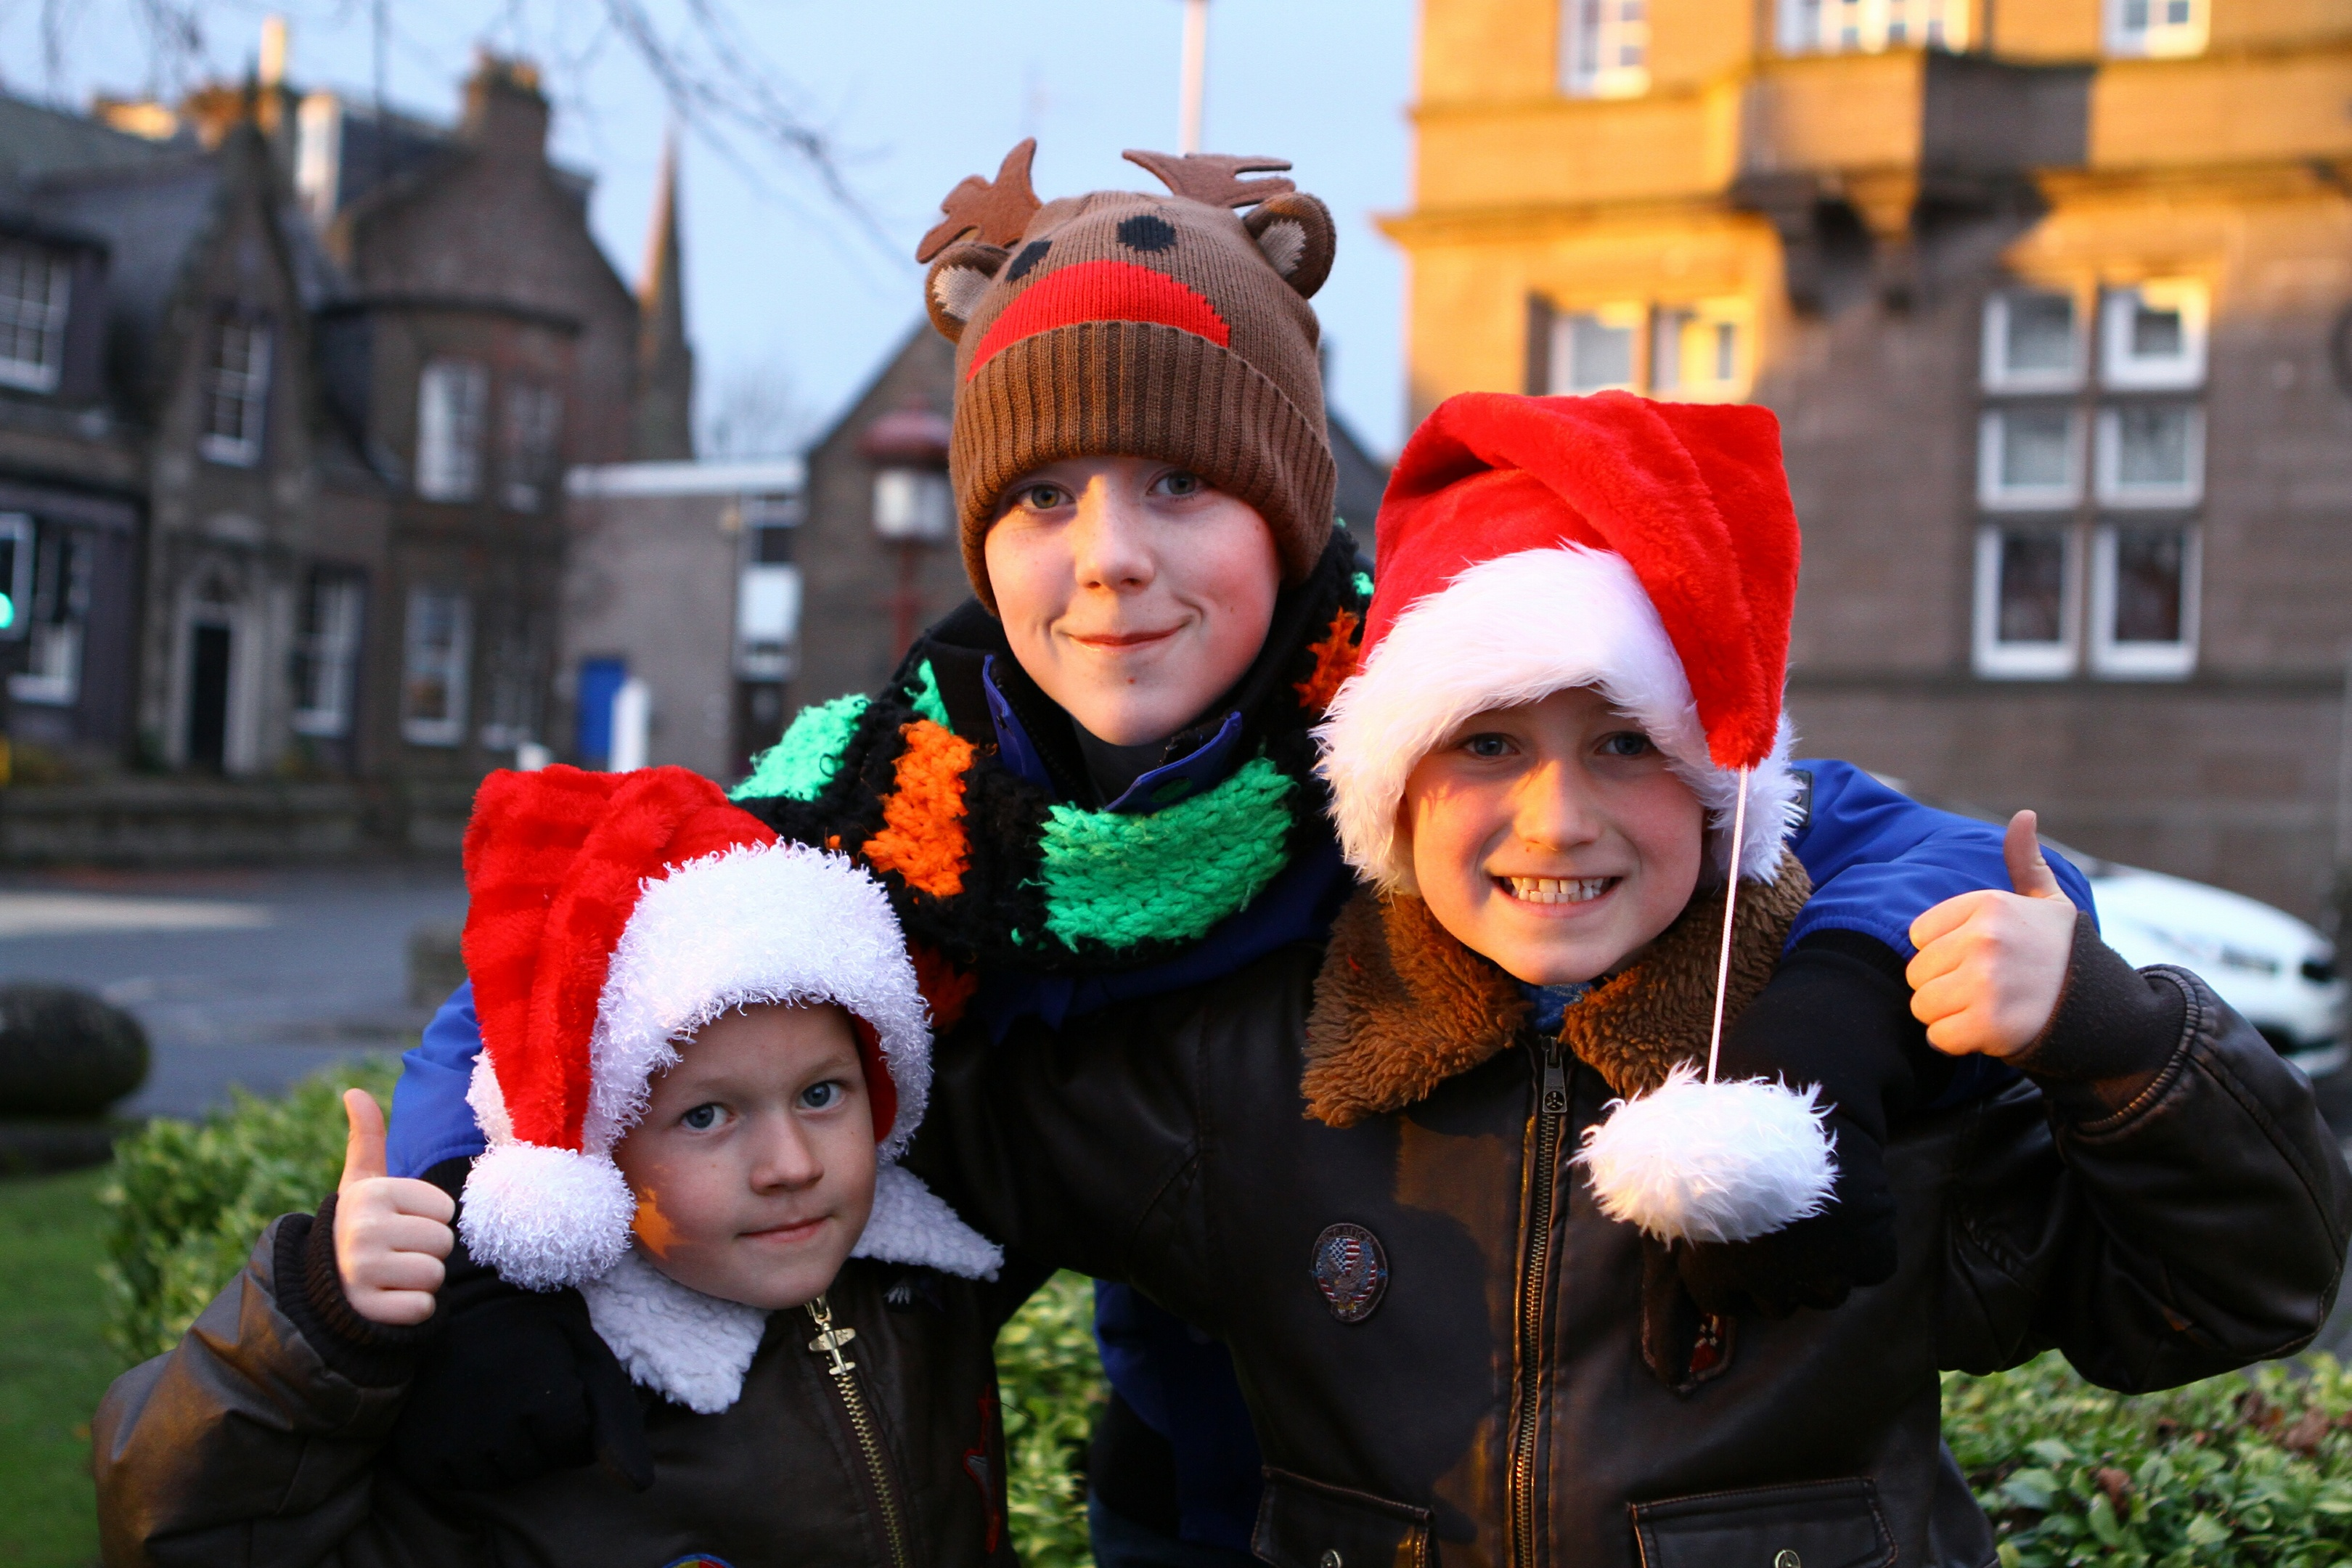 William McDonald, 6, Alex McFarlane, 12, and Andrew McDonald, 8,  at the Brechin Christmas lights event.